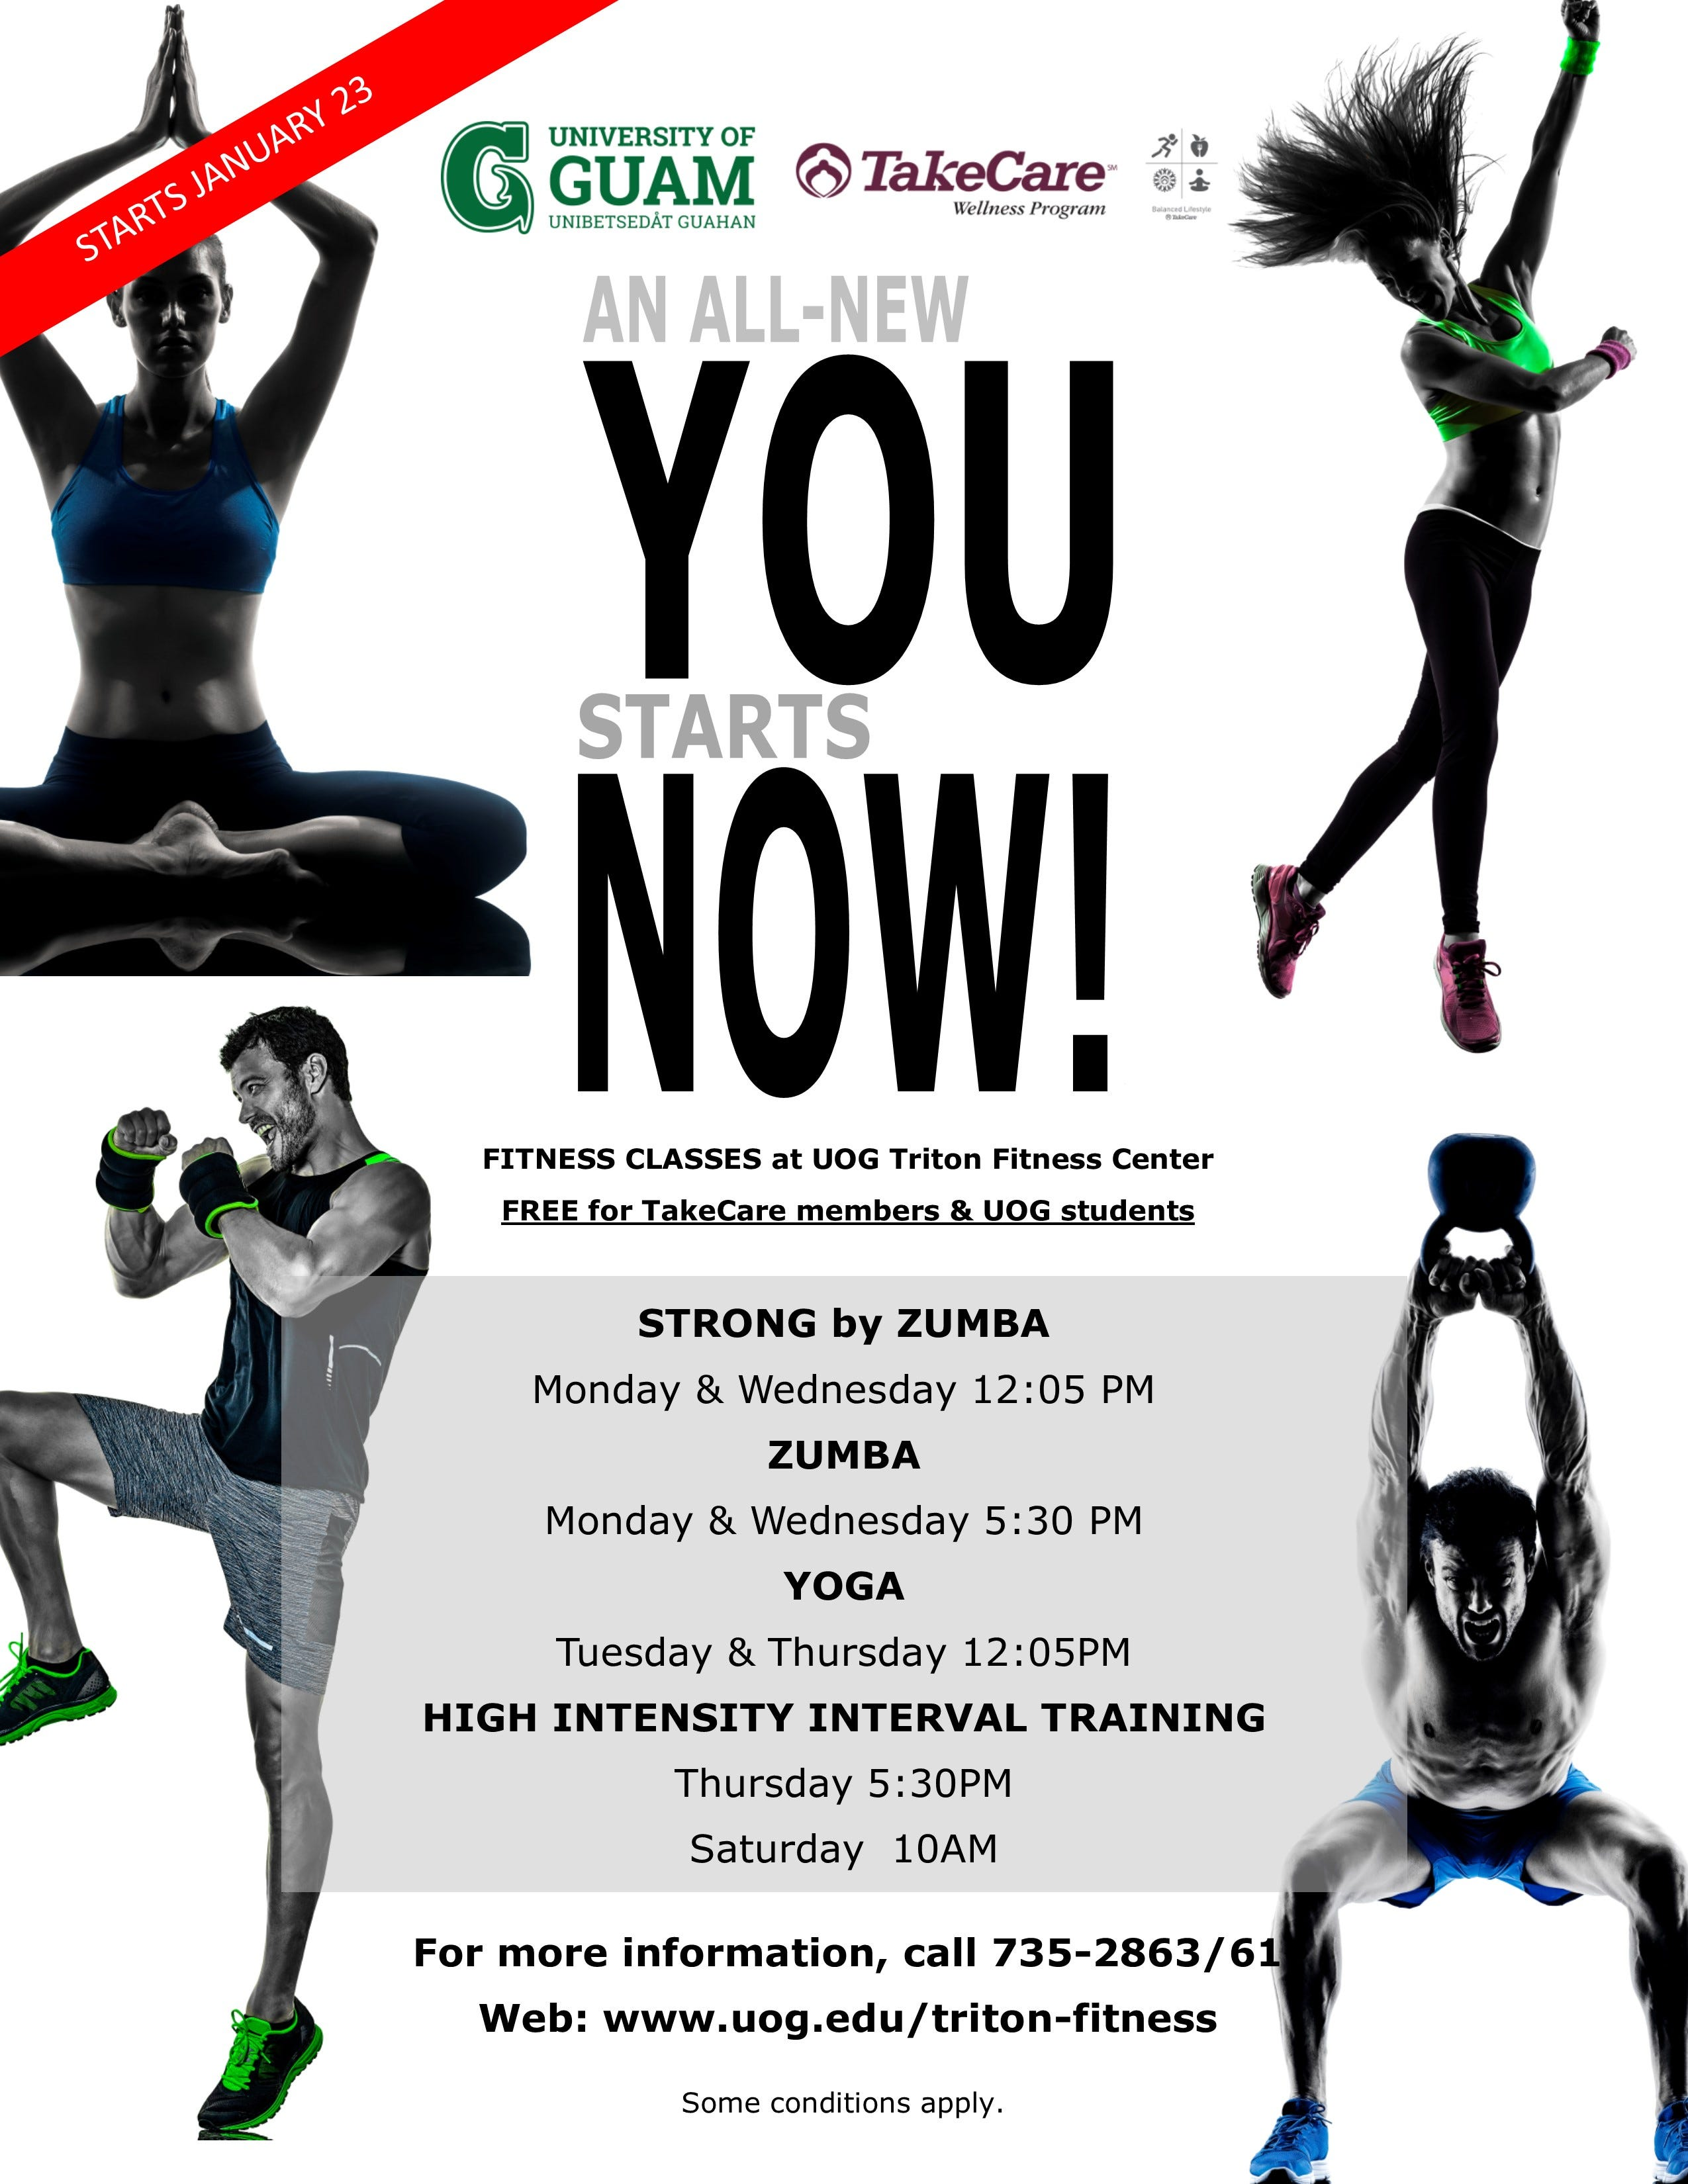 The UOG Triton Fitness Center launches an all-new array of fitness classes on Jan. 23, 2019.